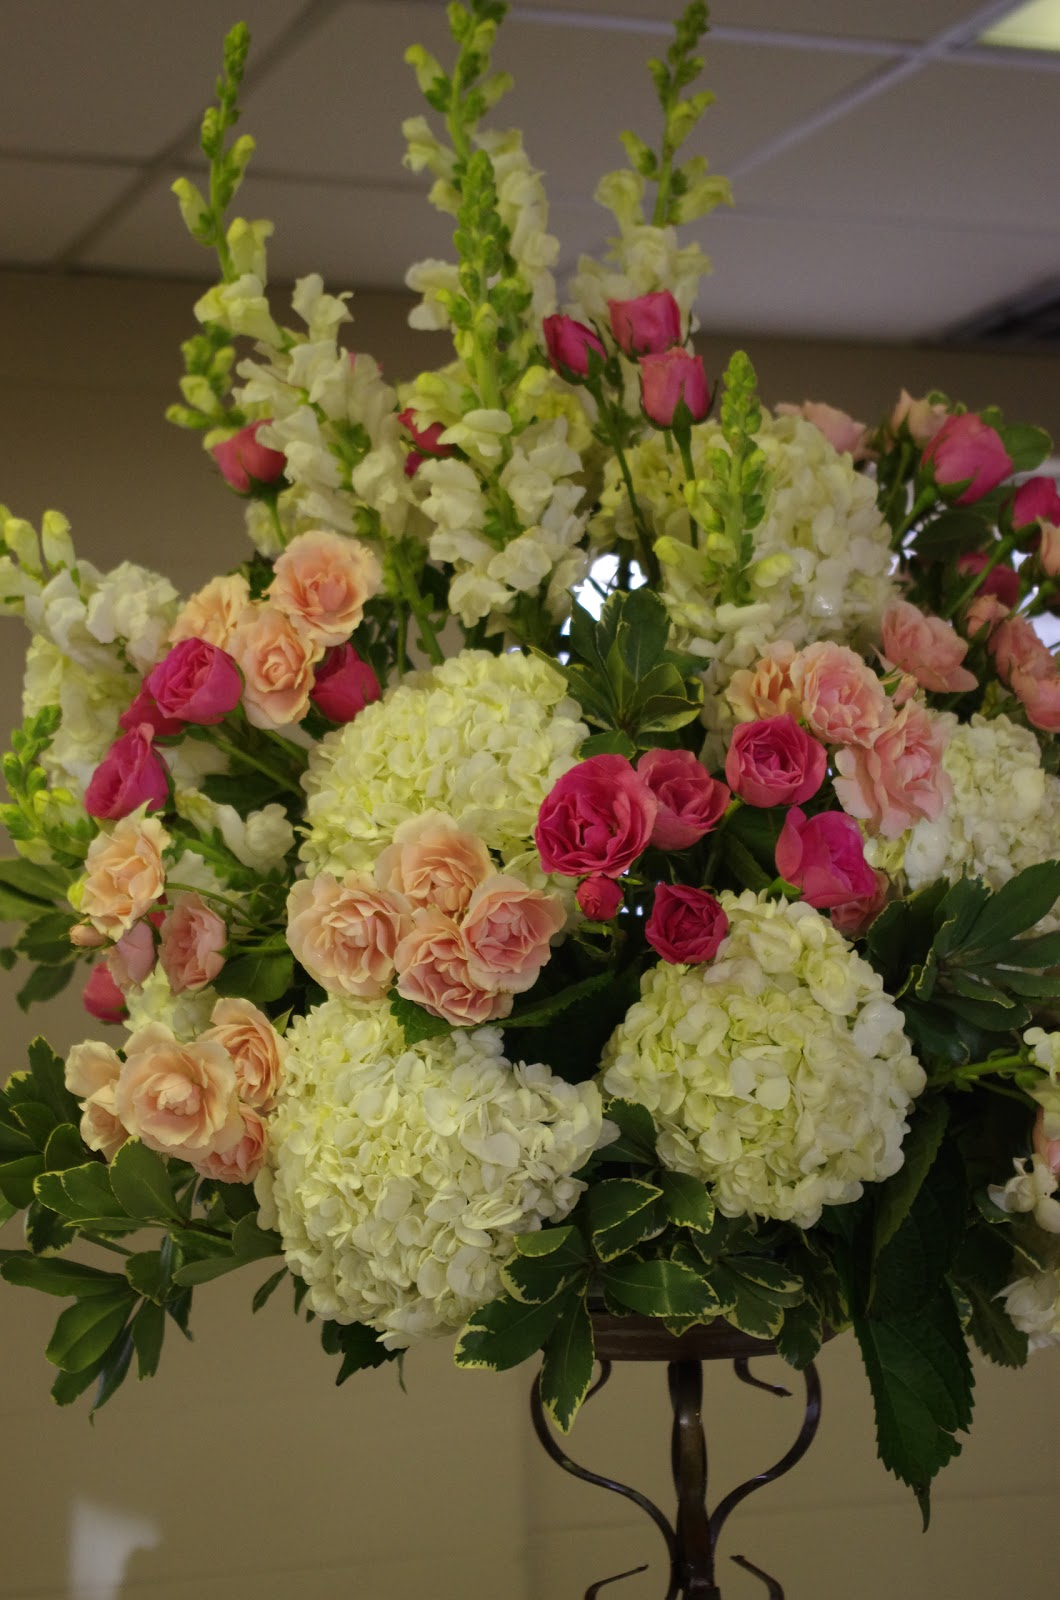 Flower arrangements for birthday parties new house designs flowers by amy weddings and design 80th birthday party izmirmasajfo